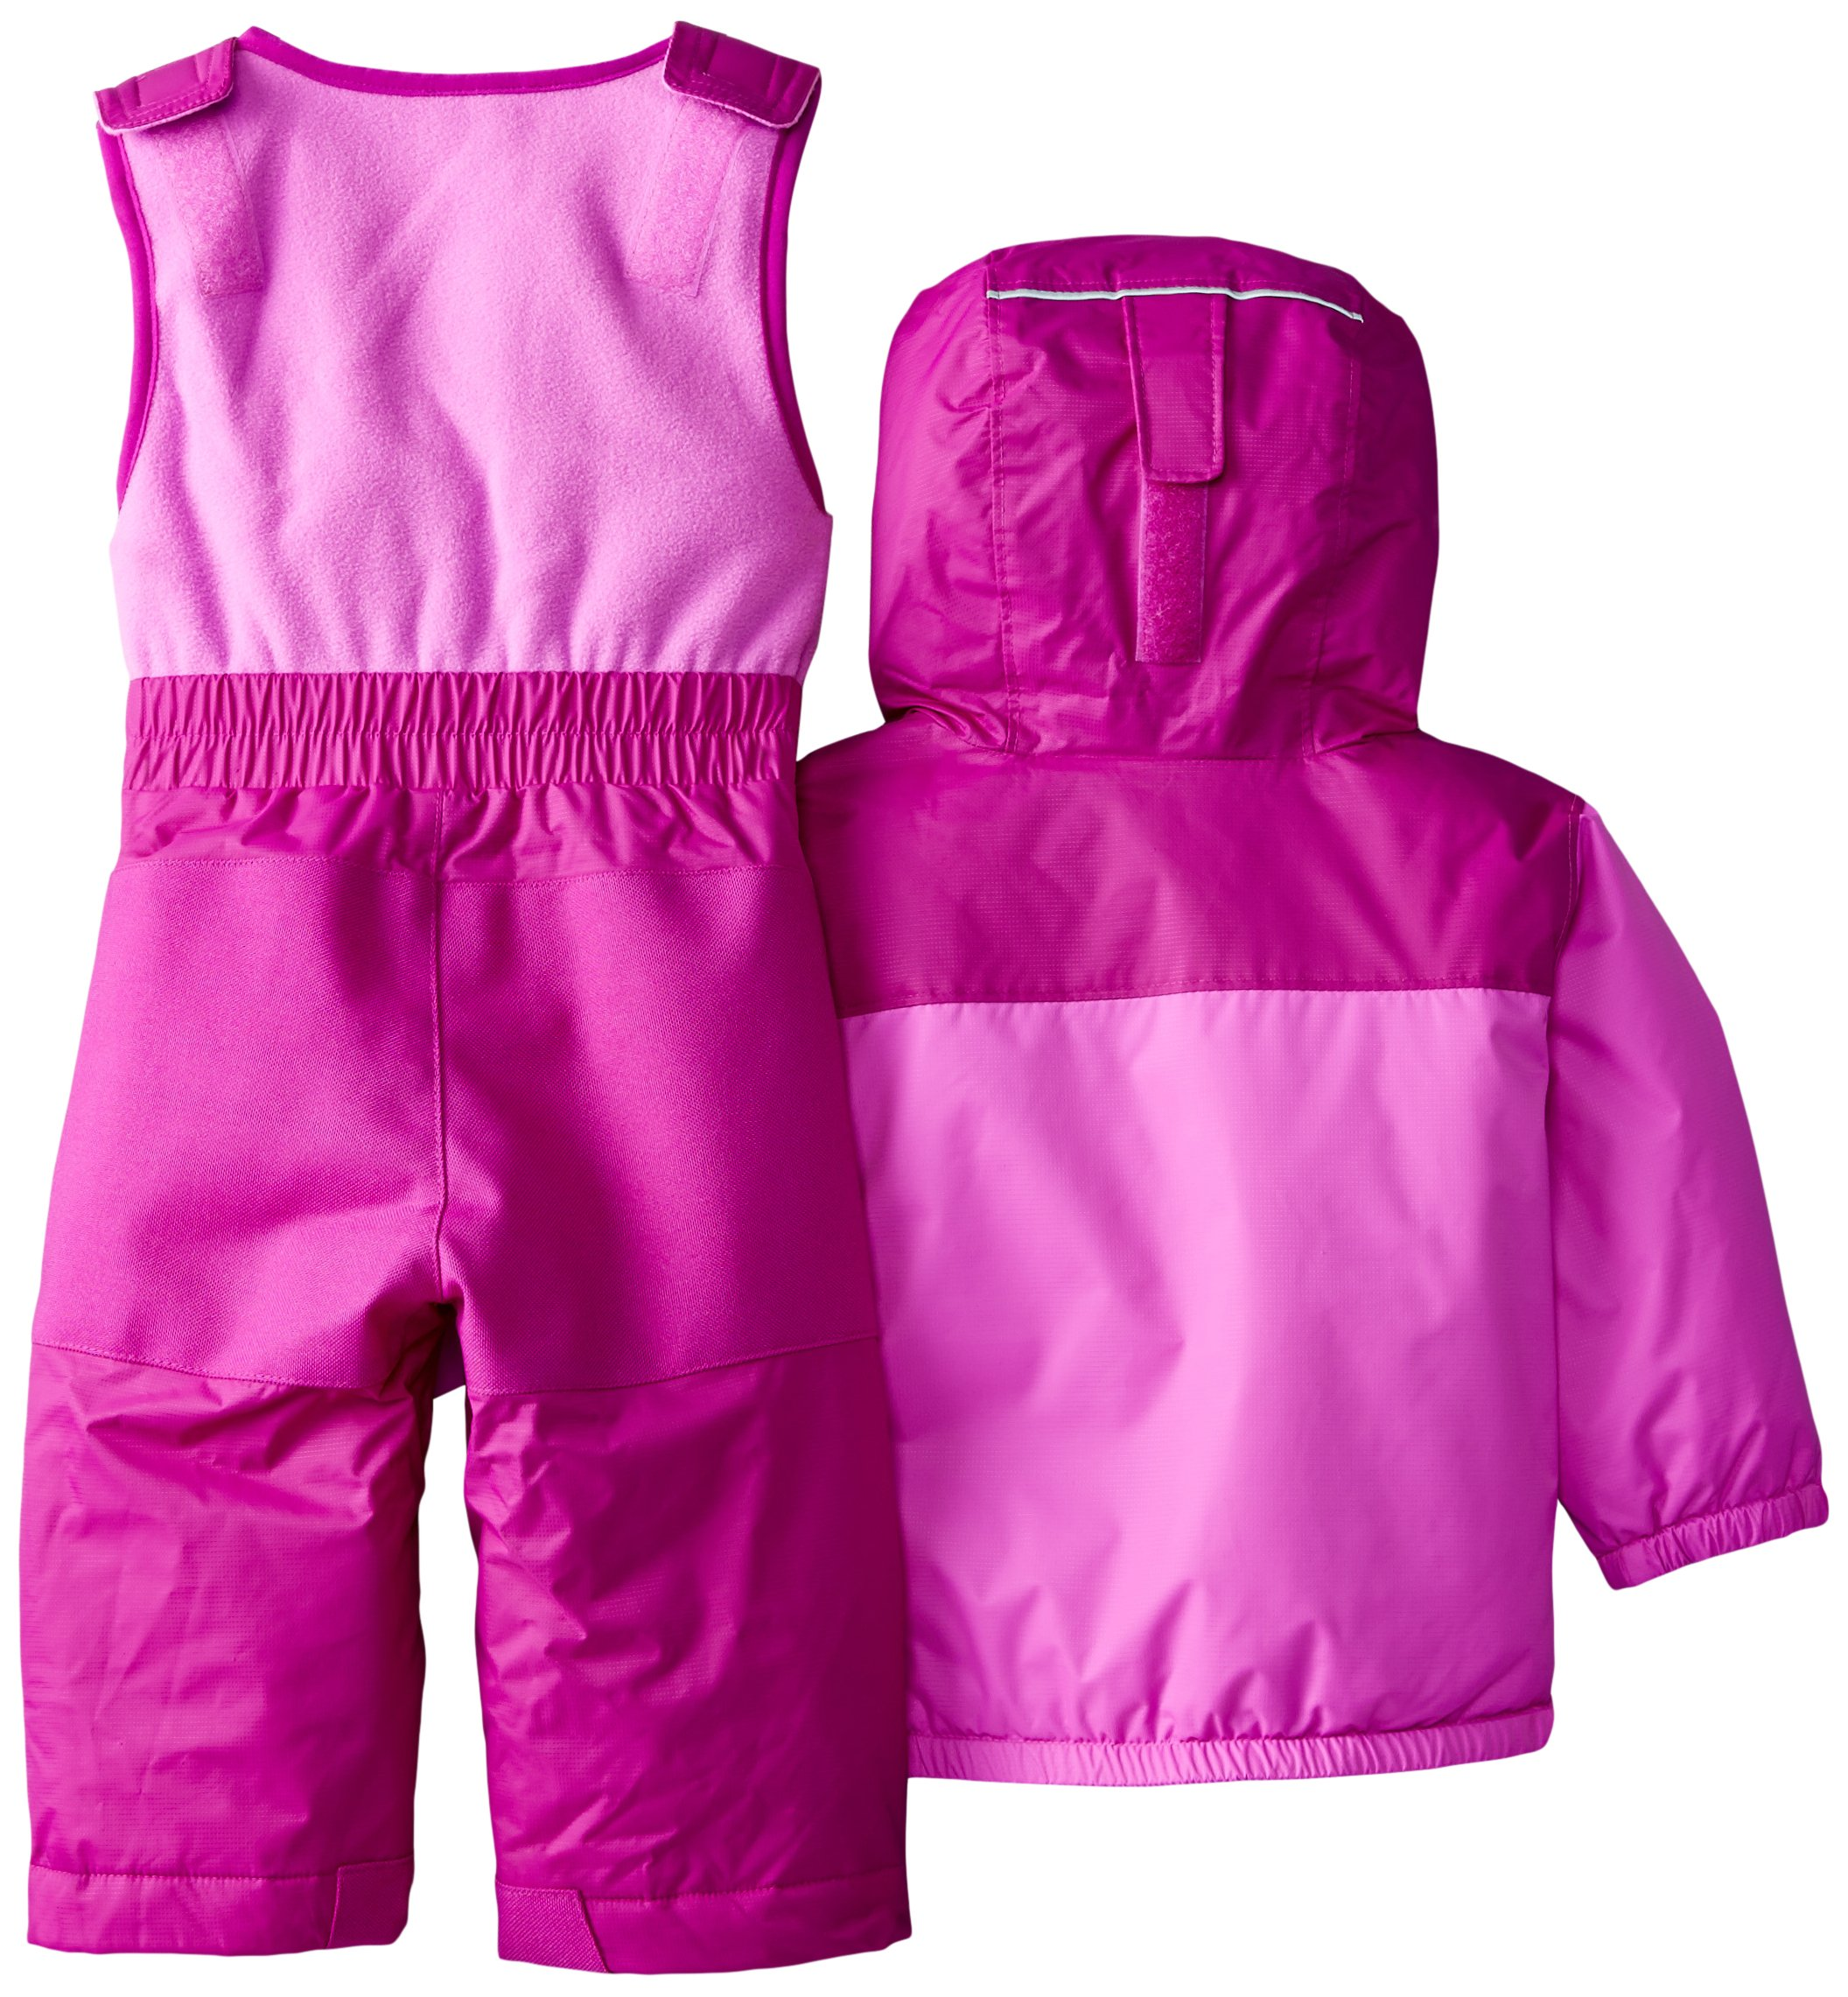 Columbia Baby Girls' Double Flake Reversible Set, Bright Plum/Foxglove, 6-12 Months by Columbia (Image #2)